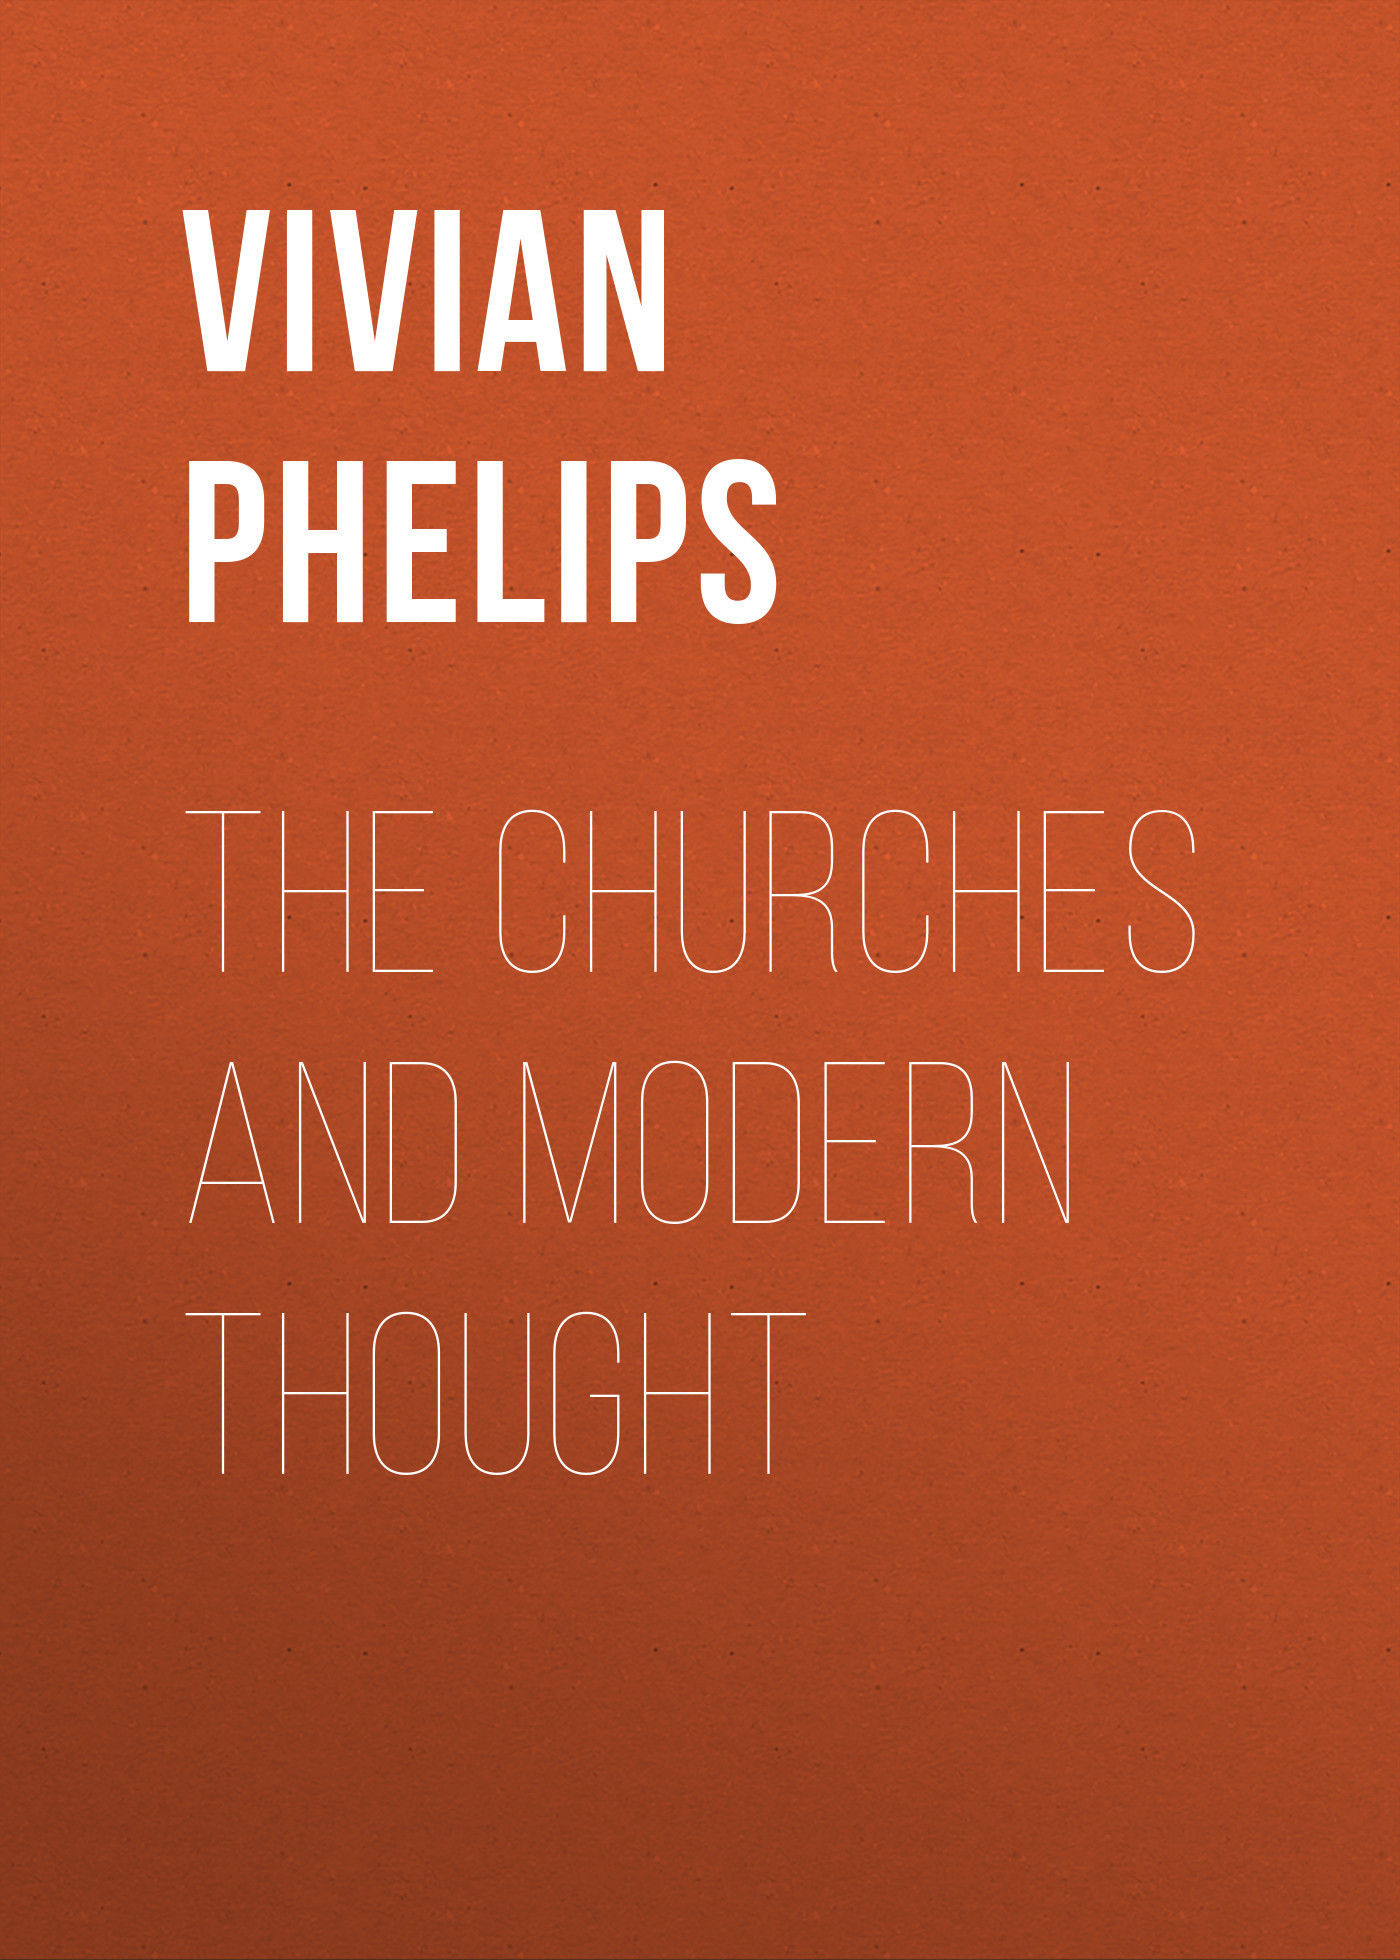 Vivian Phelips The Churches and Modern Thought